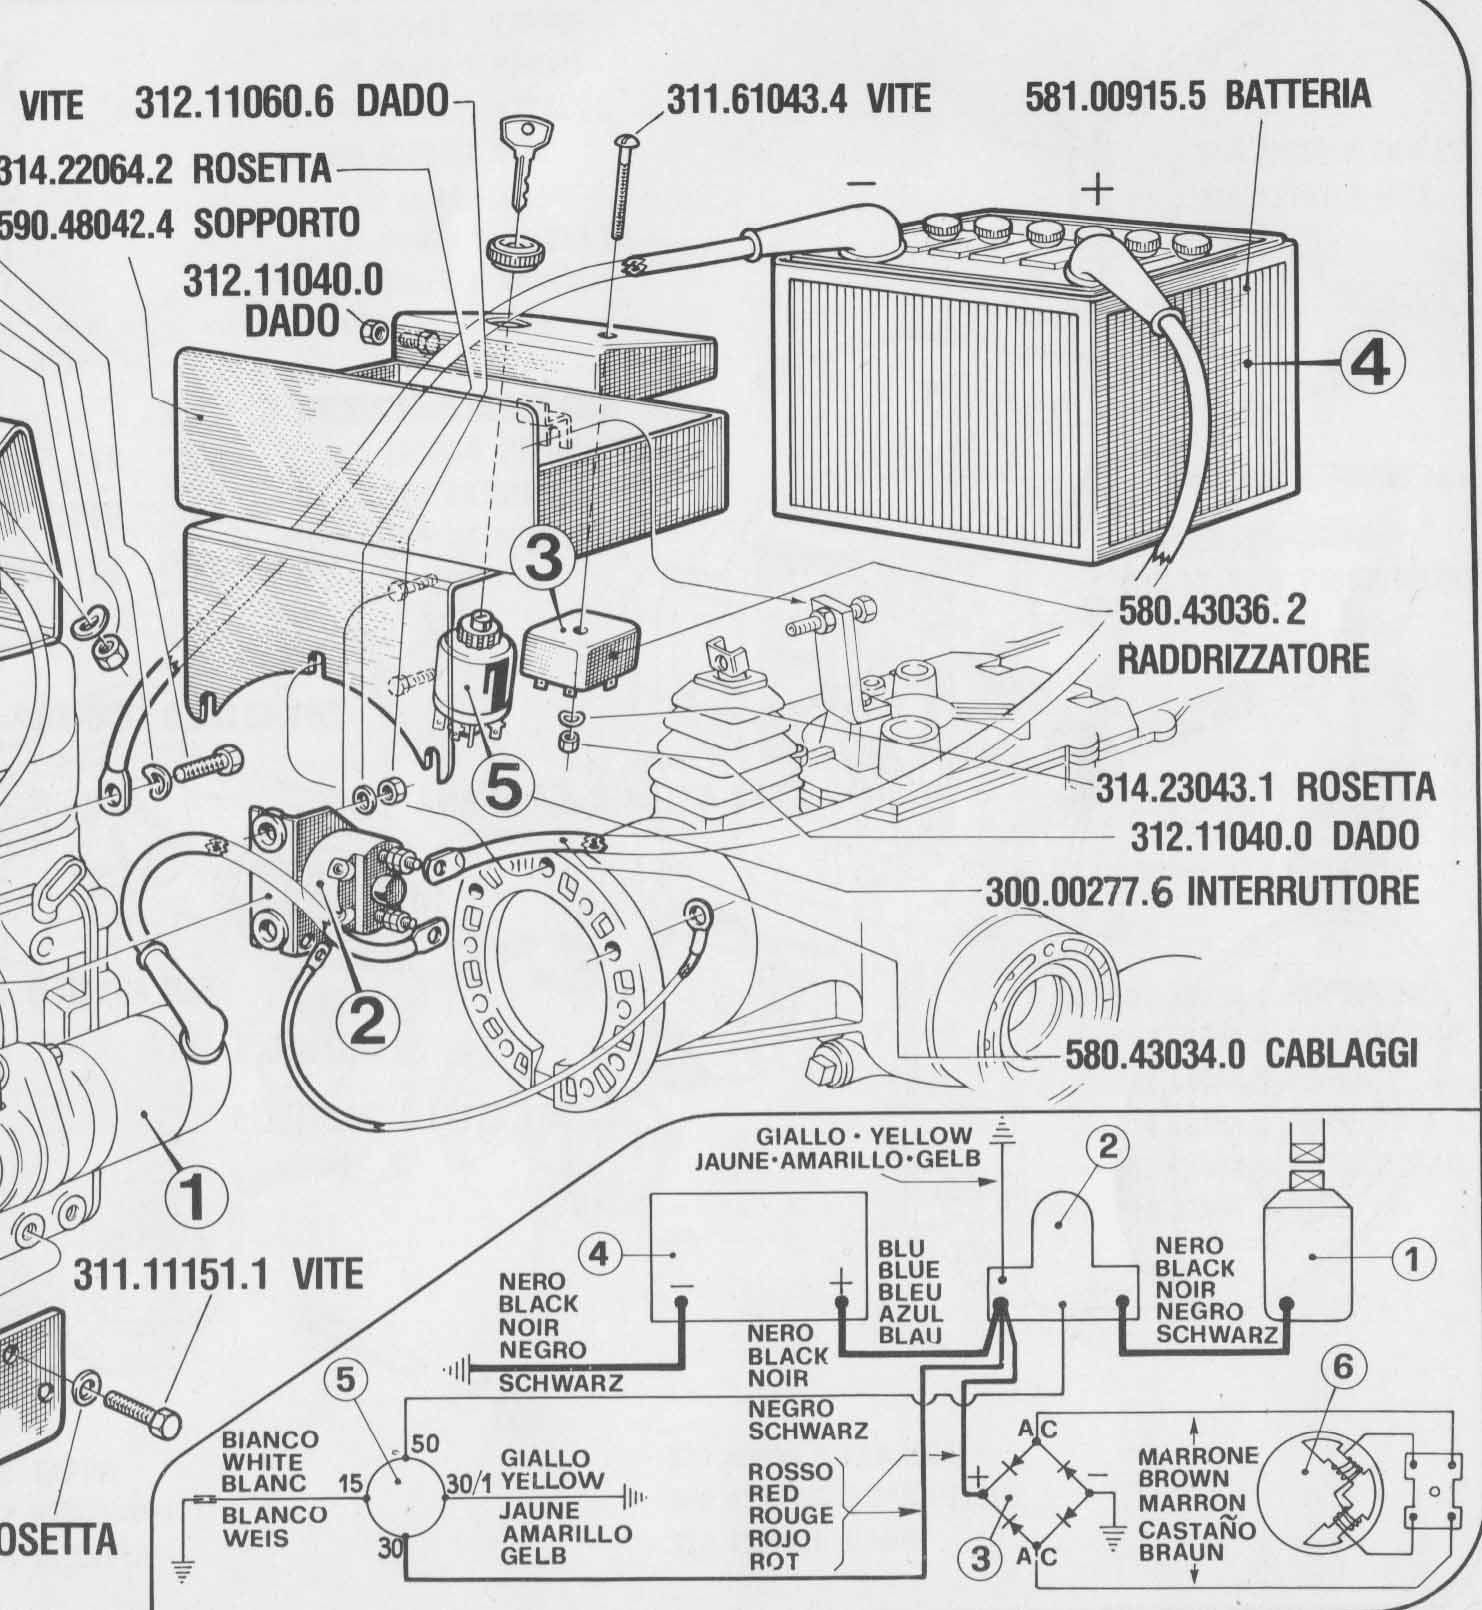 John Deere 4430 Wiring Harness Library. John Deere 4430 Wiring Schematic Electrical Work Diagram \u2022 435. John Deere. John Deere 4230 Parts Diagram Air Cleaner At Scoala.co